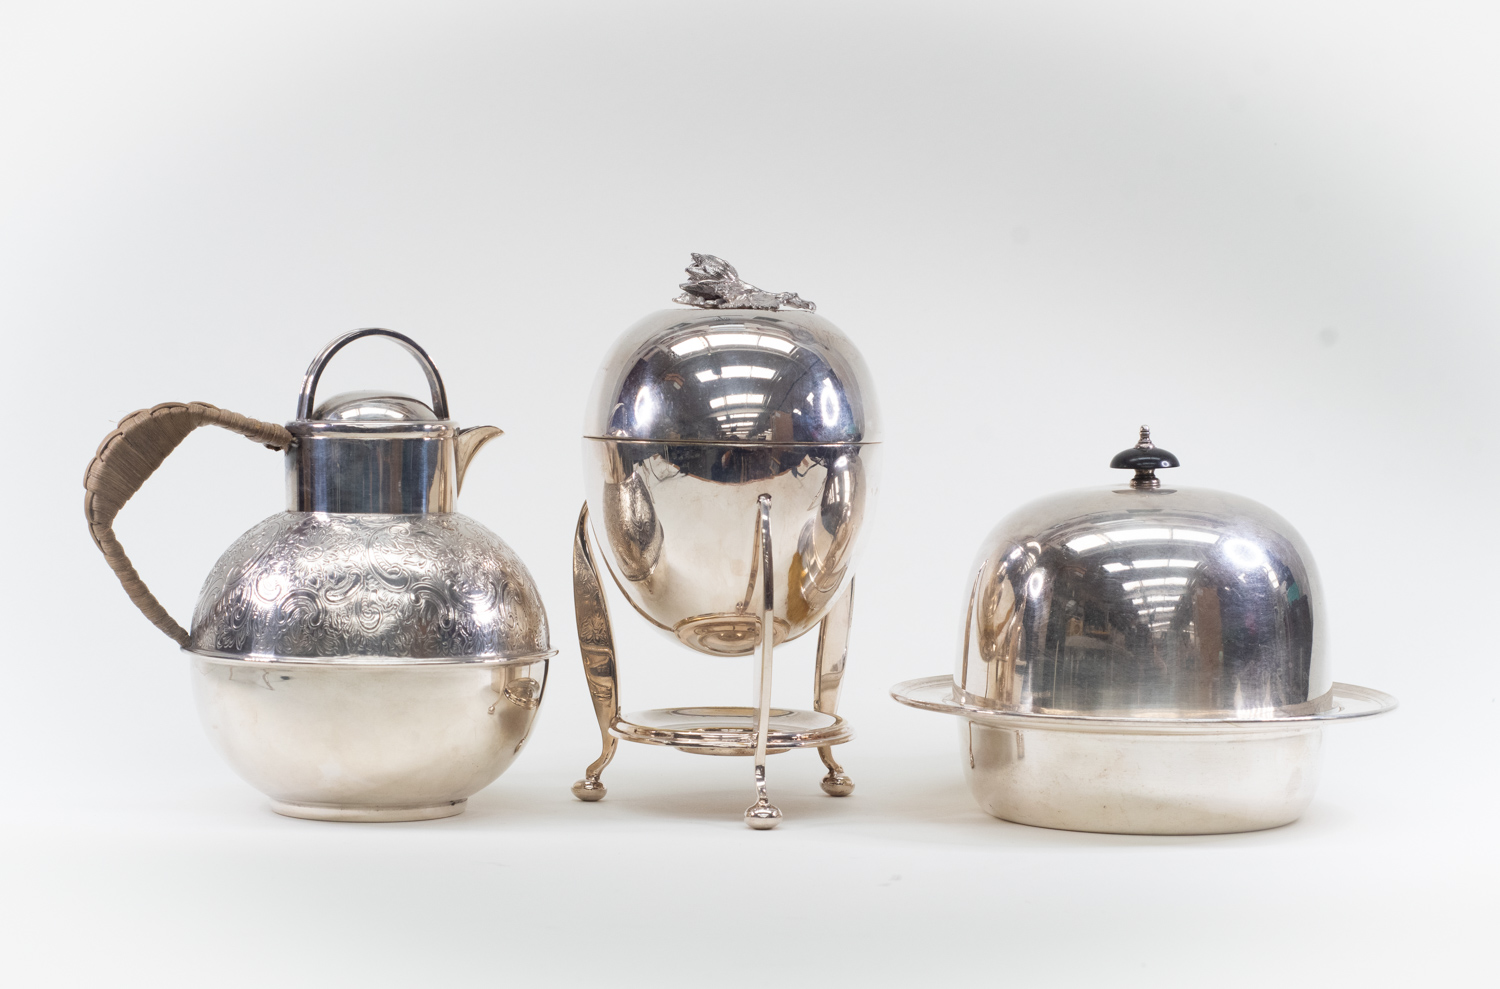 Lot 2 - A silver plated Asprey muffin dish, a silver plated egg coddler, together with a Garrard & Co plated